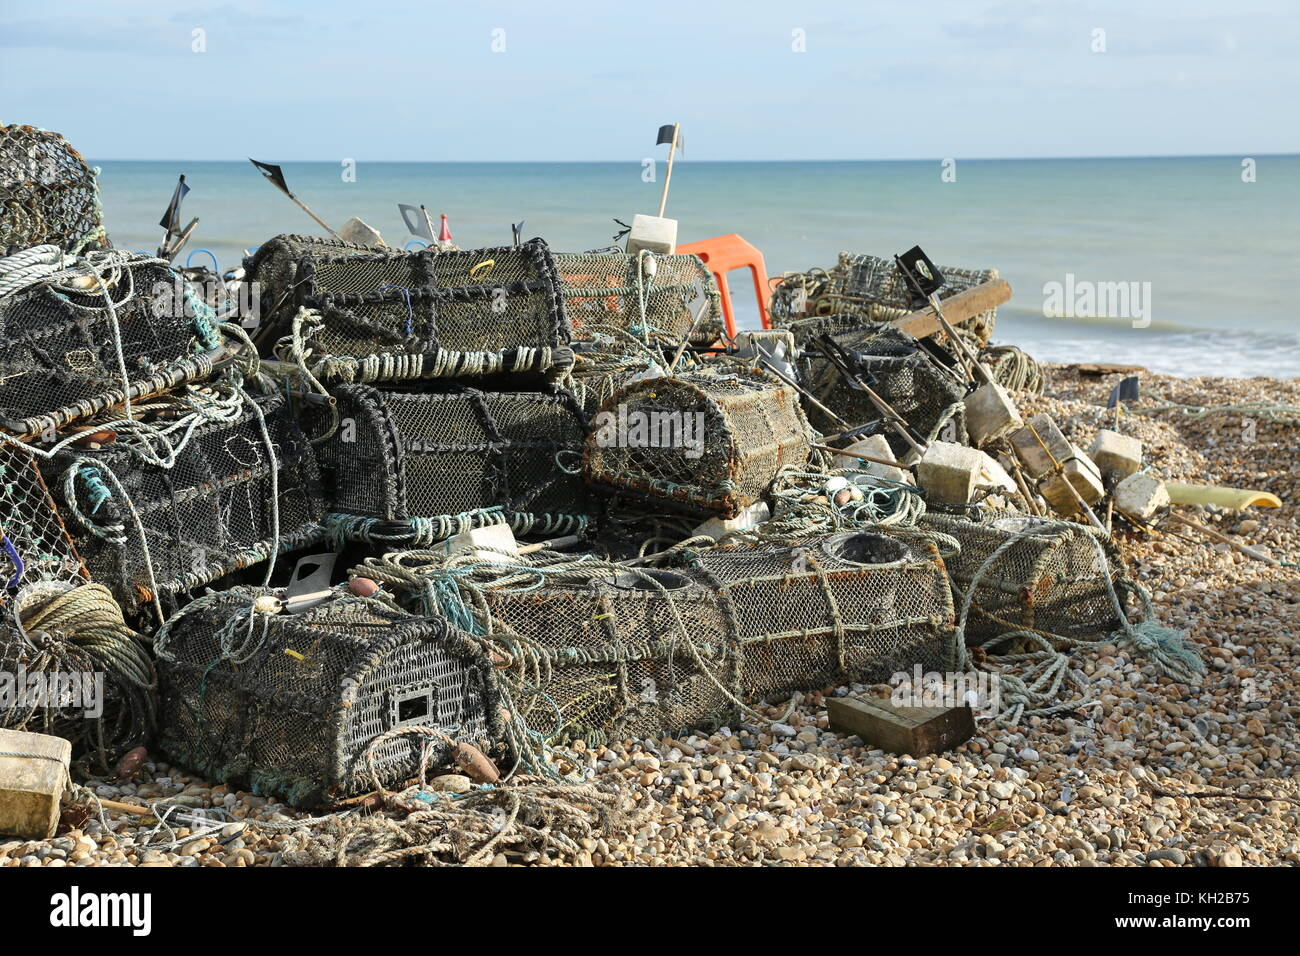 Fishermen's lobster pots piled up on the shingle beach in Bognor Regis, West Sussex, UK. Sunny, winter day. - Stock Image